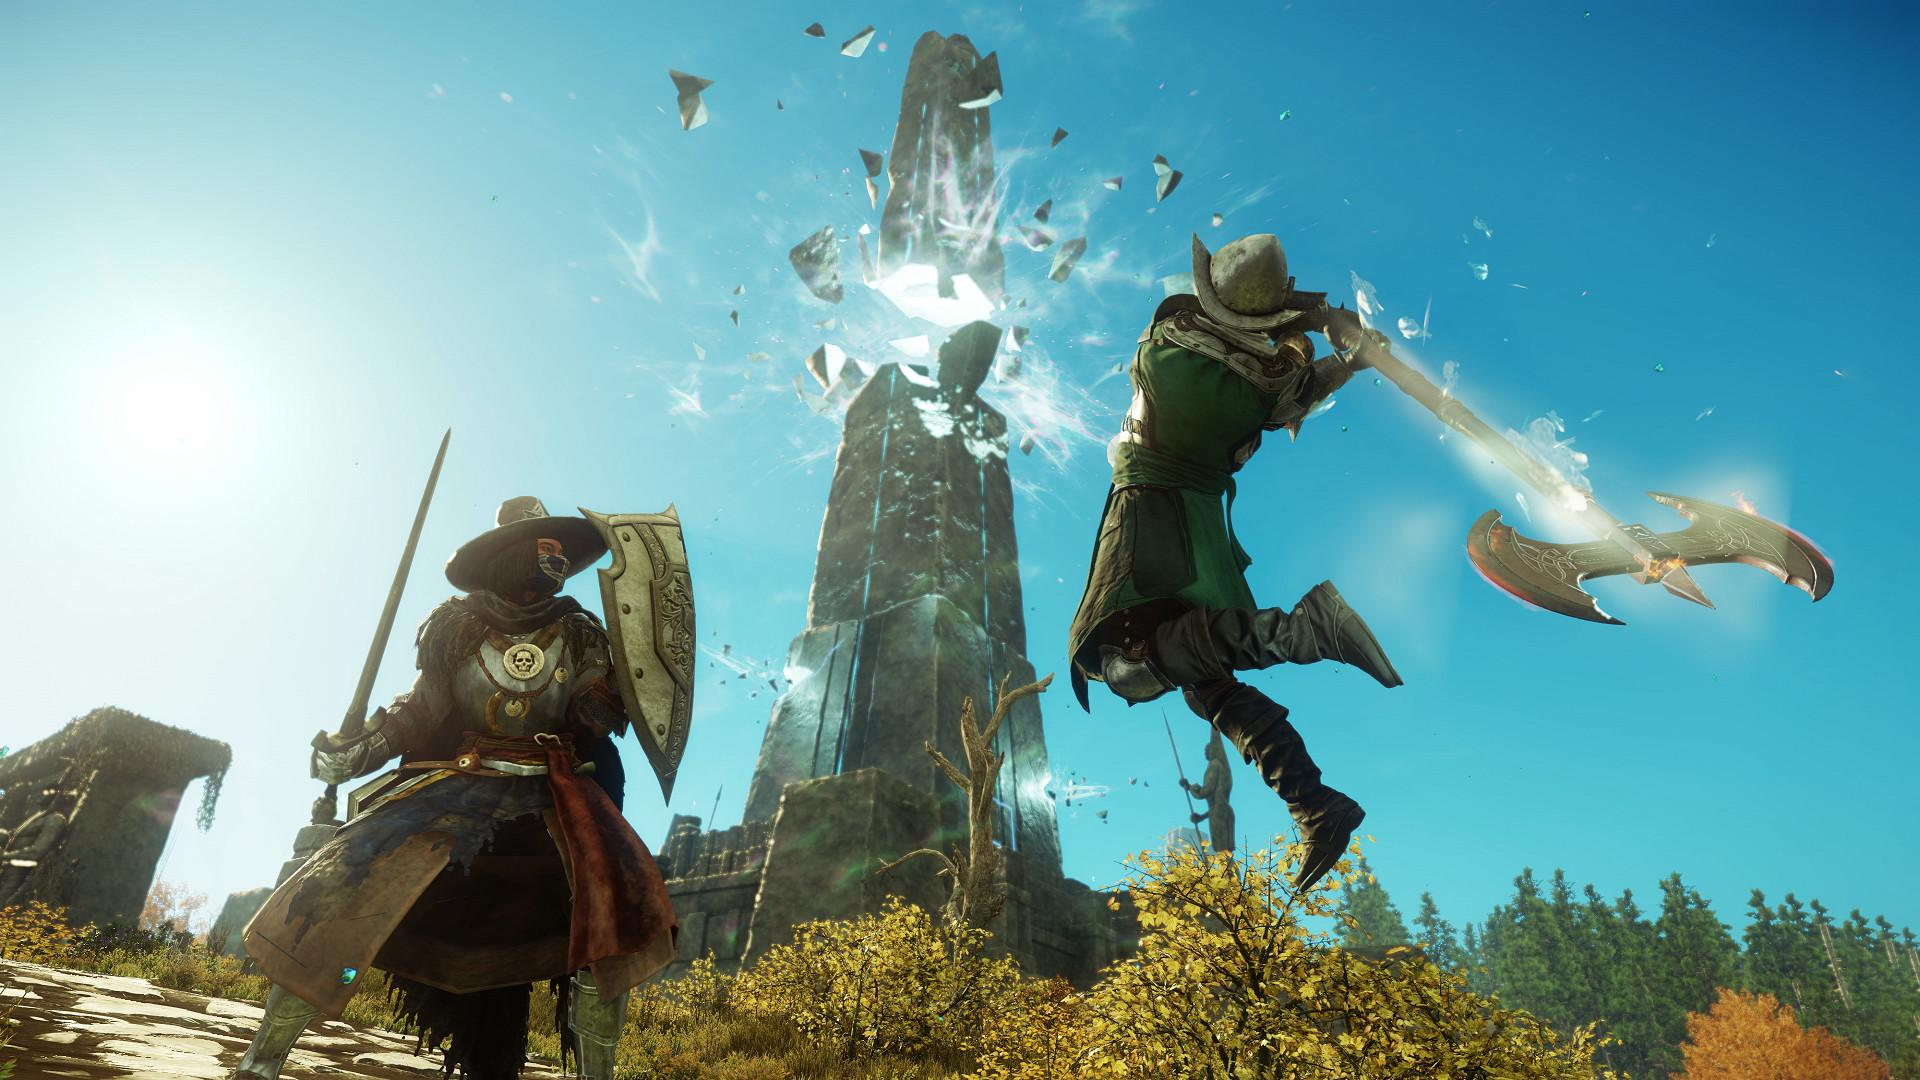 New World's PvP features a skill-based system with ability-oriented combat, manual dodging and stamina management